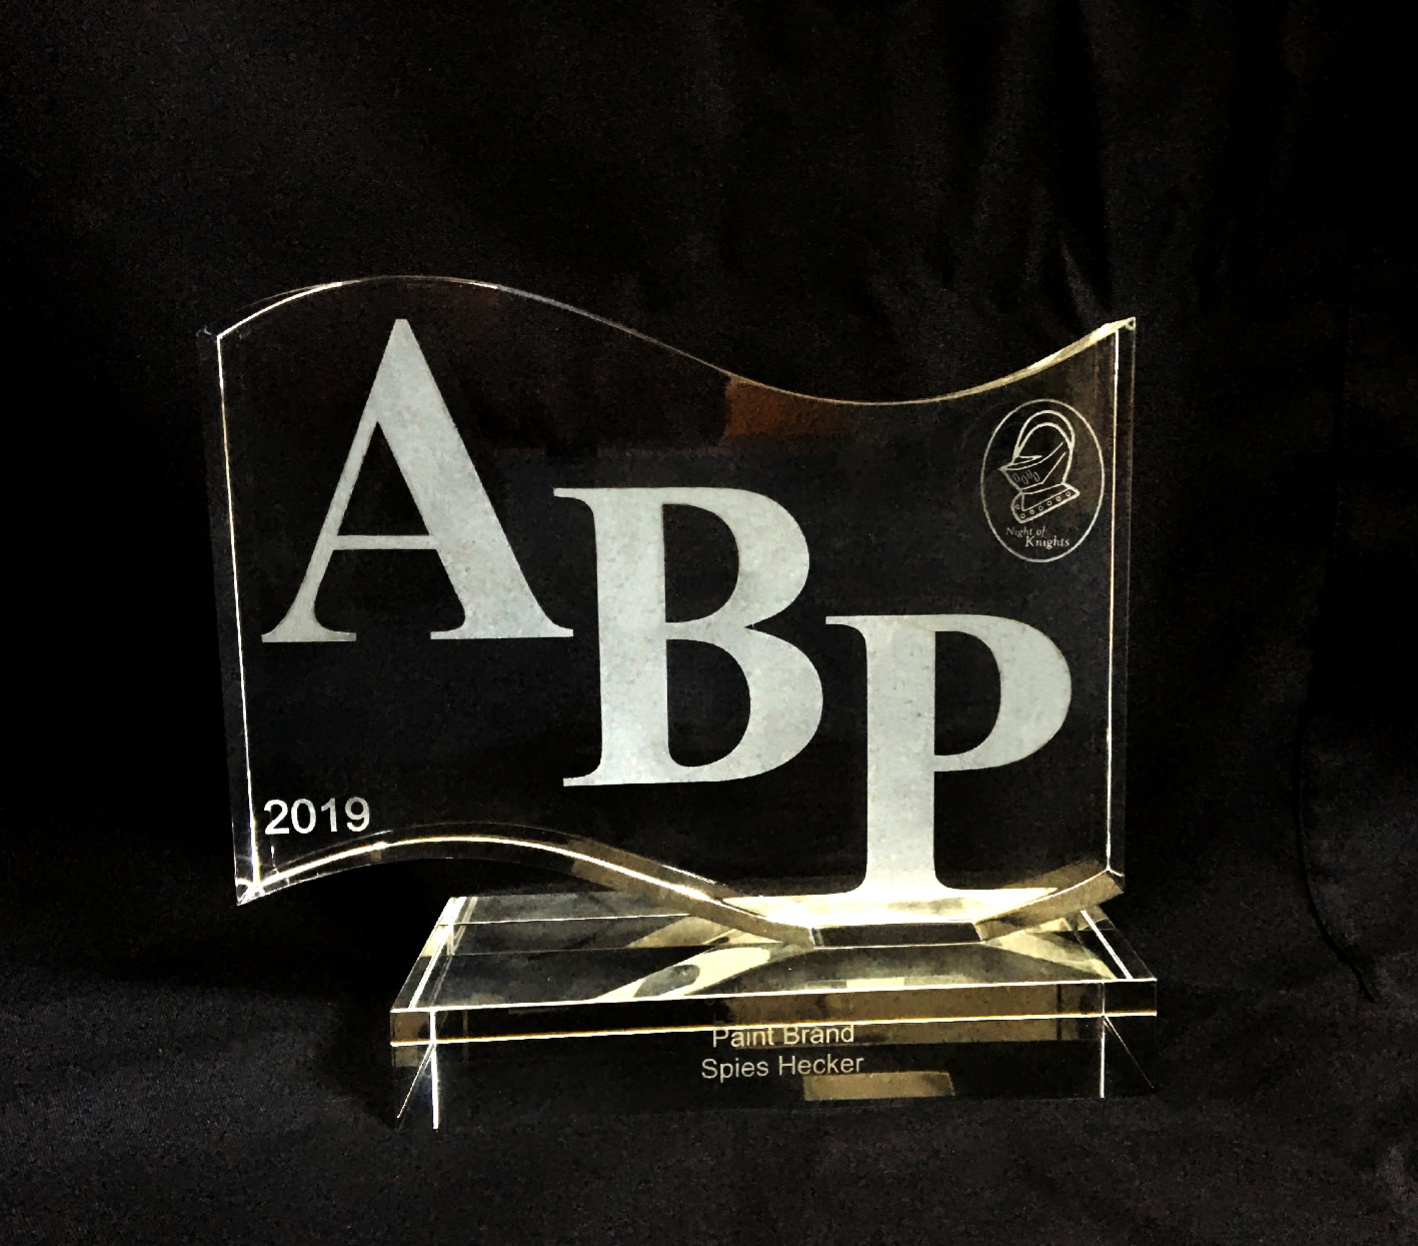 Spies Hecker scoops Paint Brand of the Year at ABP's Night of Knights Awards